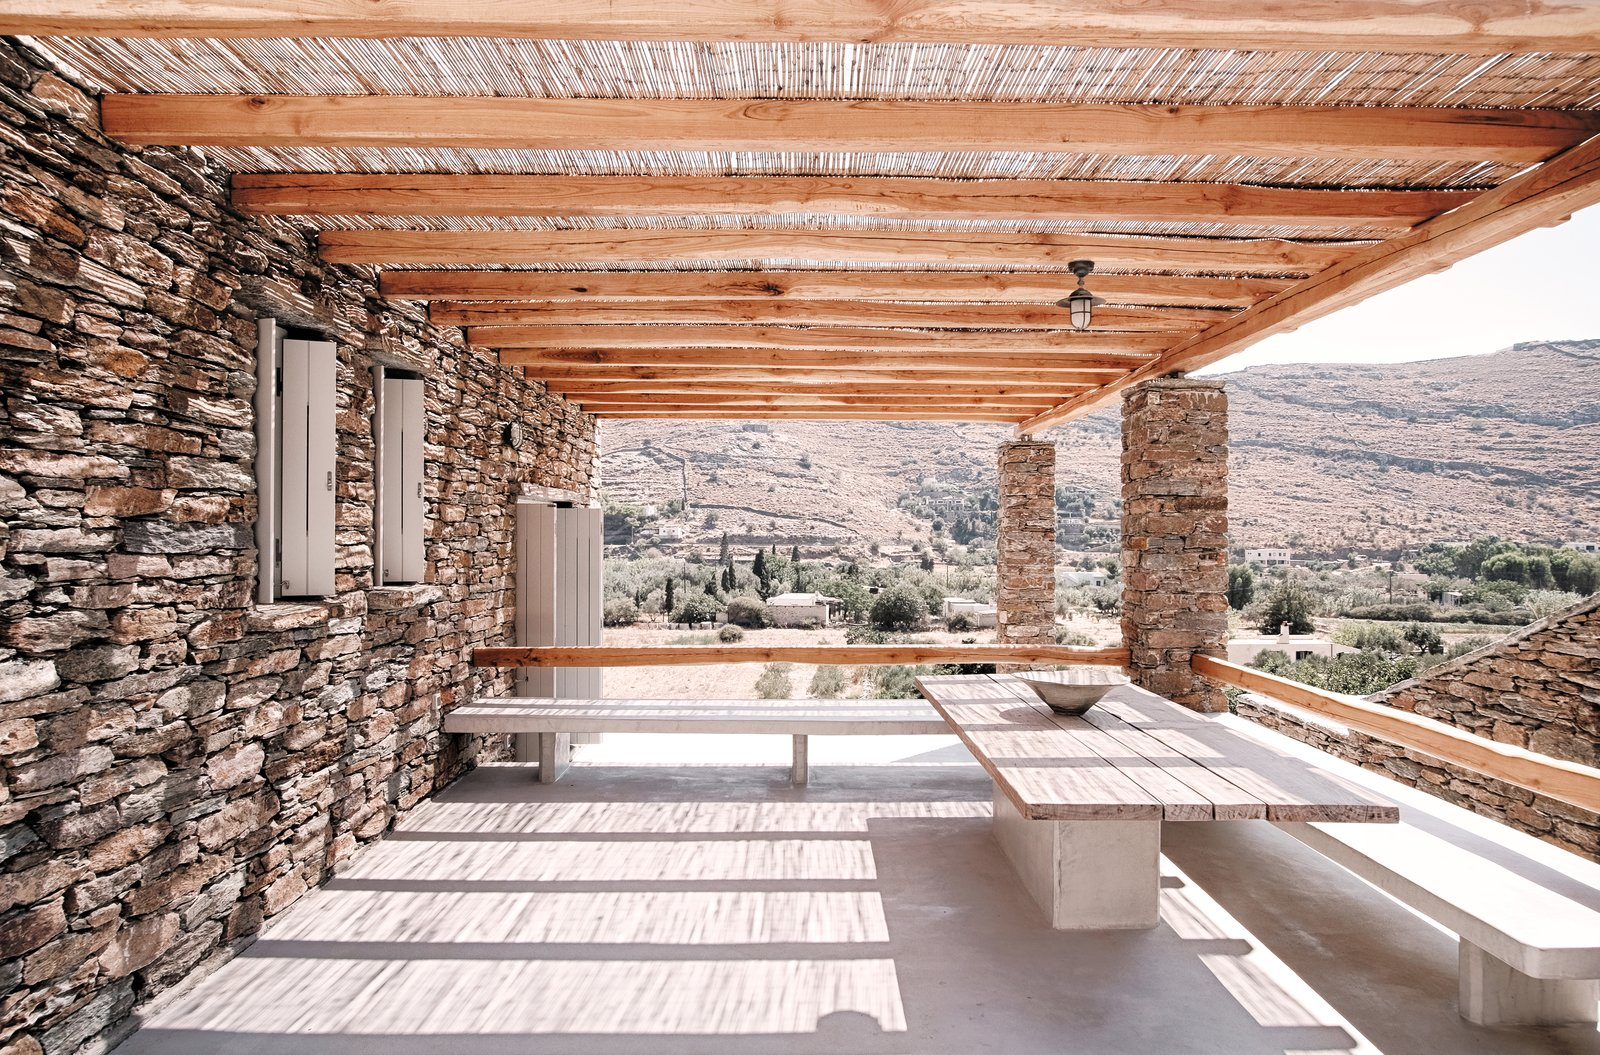 Exterior eating area with views towards the valley Tagged: Outdoor, Back Yard, Desert, Small Patio, Porch, Deck, and Wood Patio, Porch, Deck.  ROCKSPLIT house by COMETA ARCHITECTS